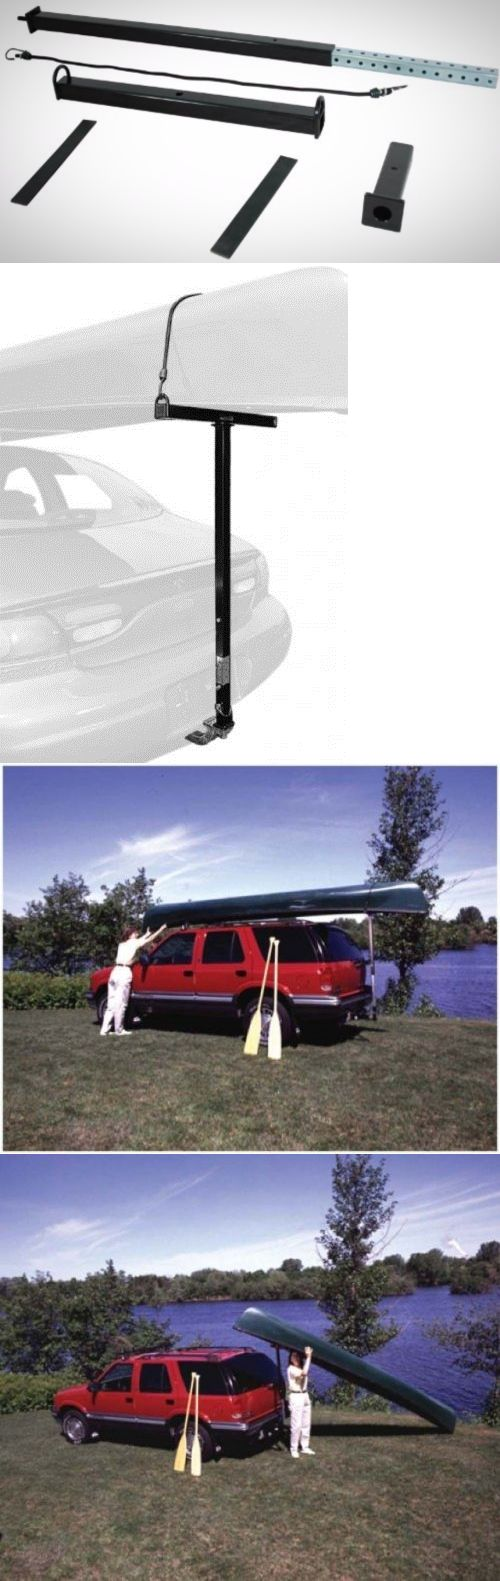 Other Kayak Canoe and Rafting 36123: Canoe Kayak Loader Reese Towpower Trailer Hitch Vehicle Durable Car Truck Racks -> BUY IT NOW ONLY: $75.09 on eBay!